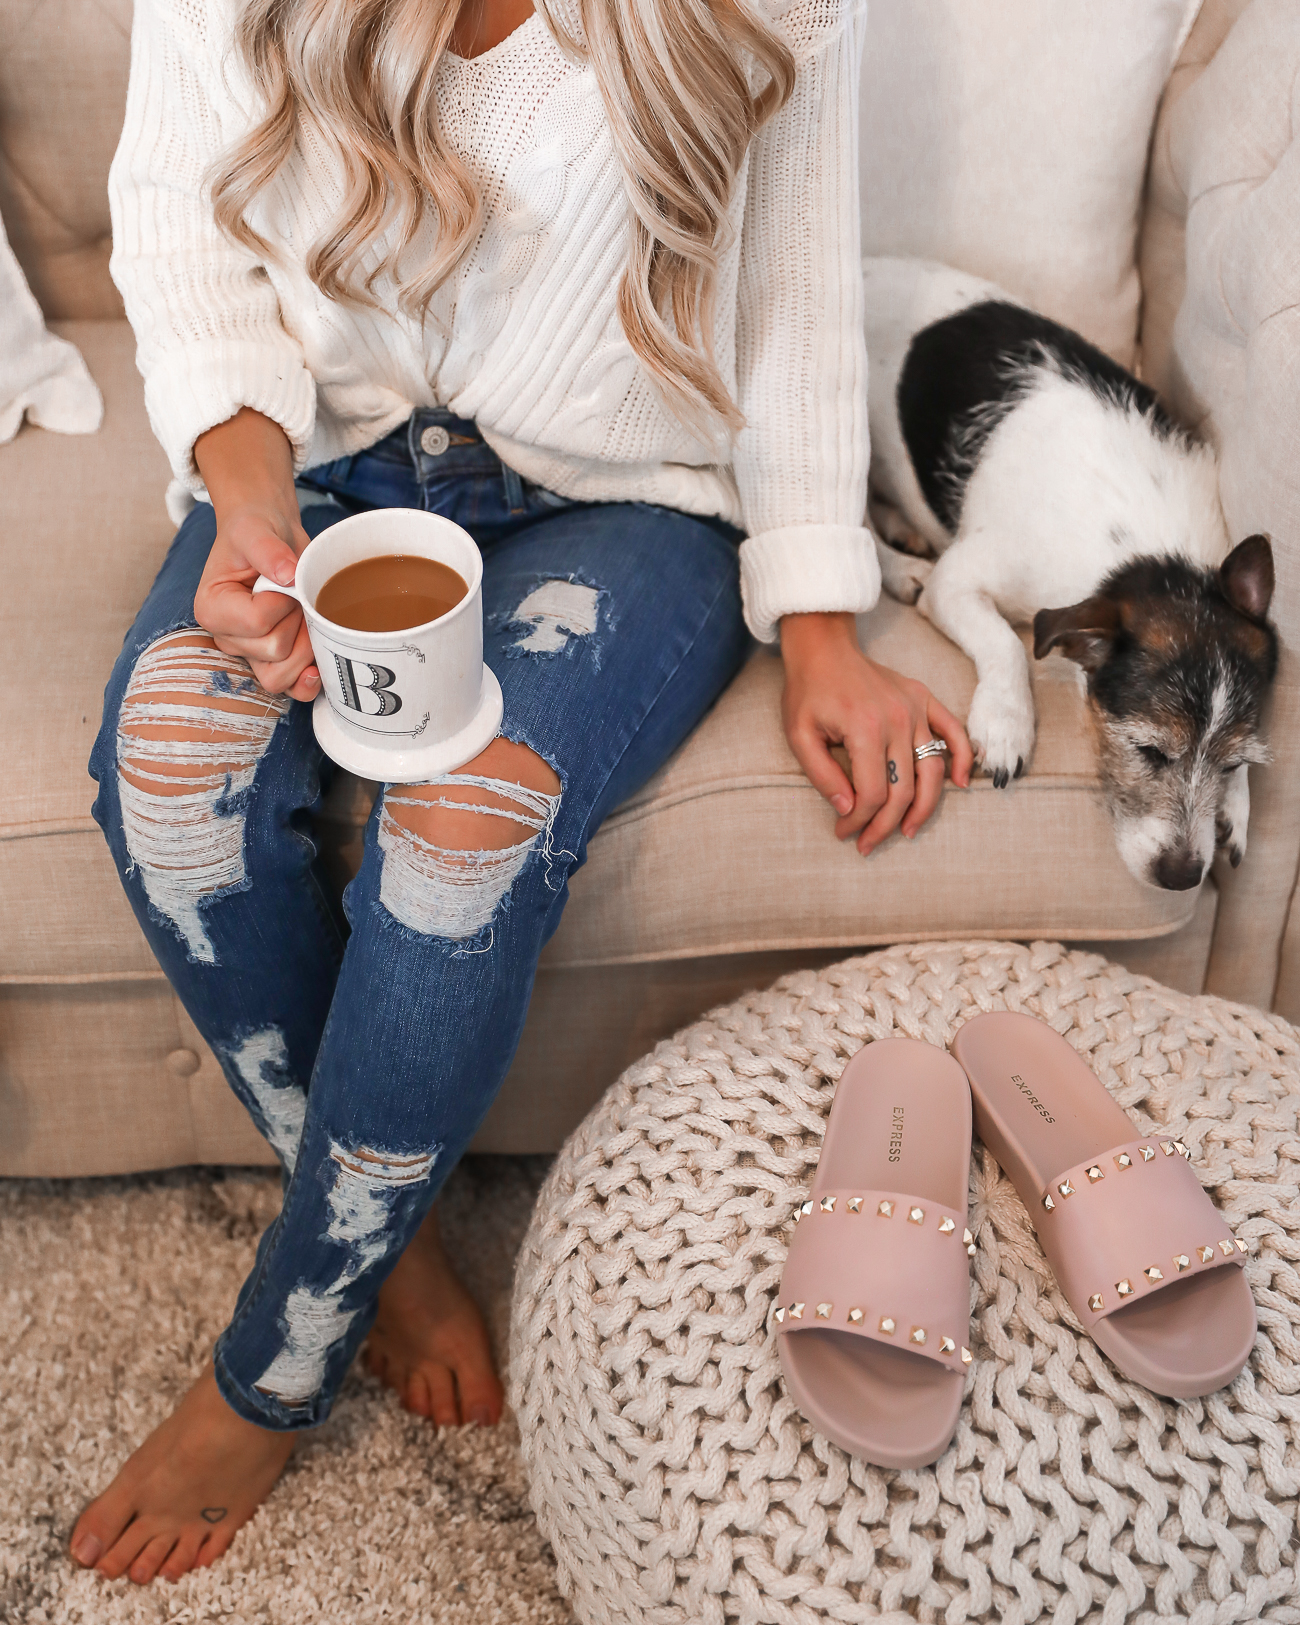 Express Petite Distressed Jeans Jack Russell Cozy Outfit Idea White Sweater-13